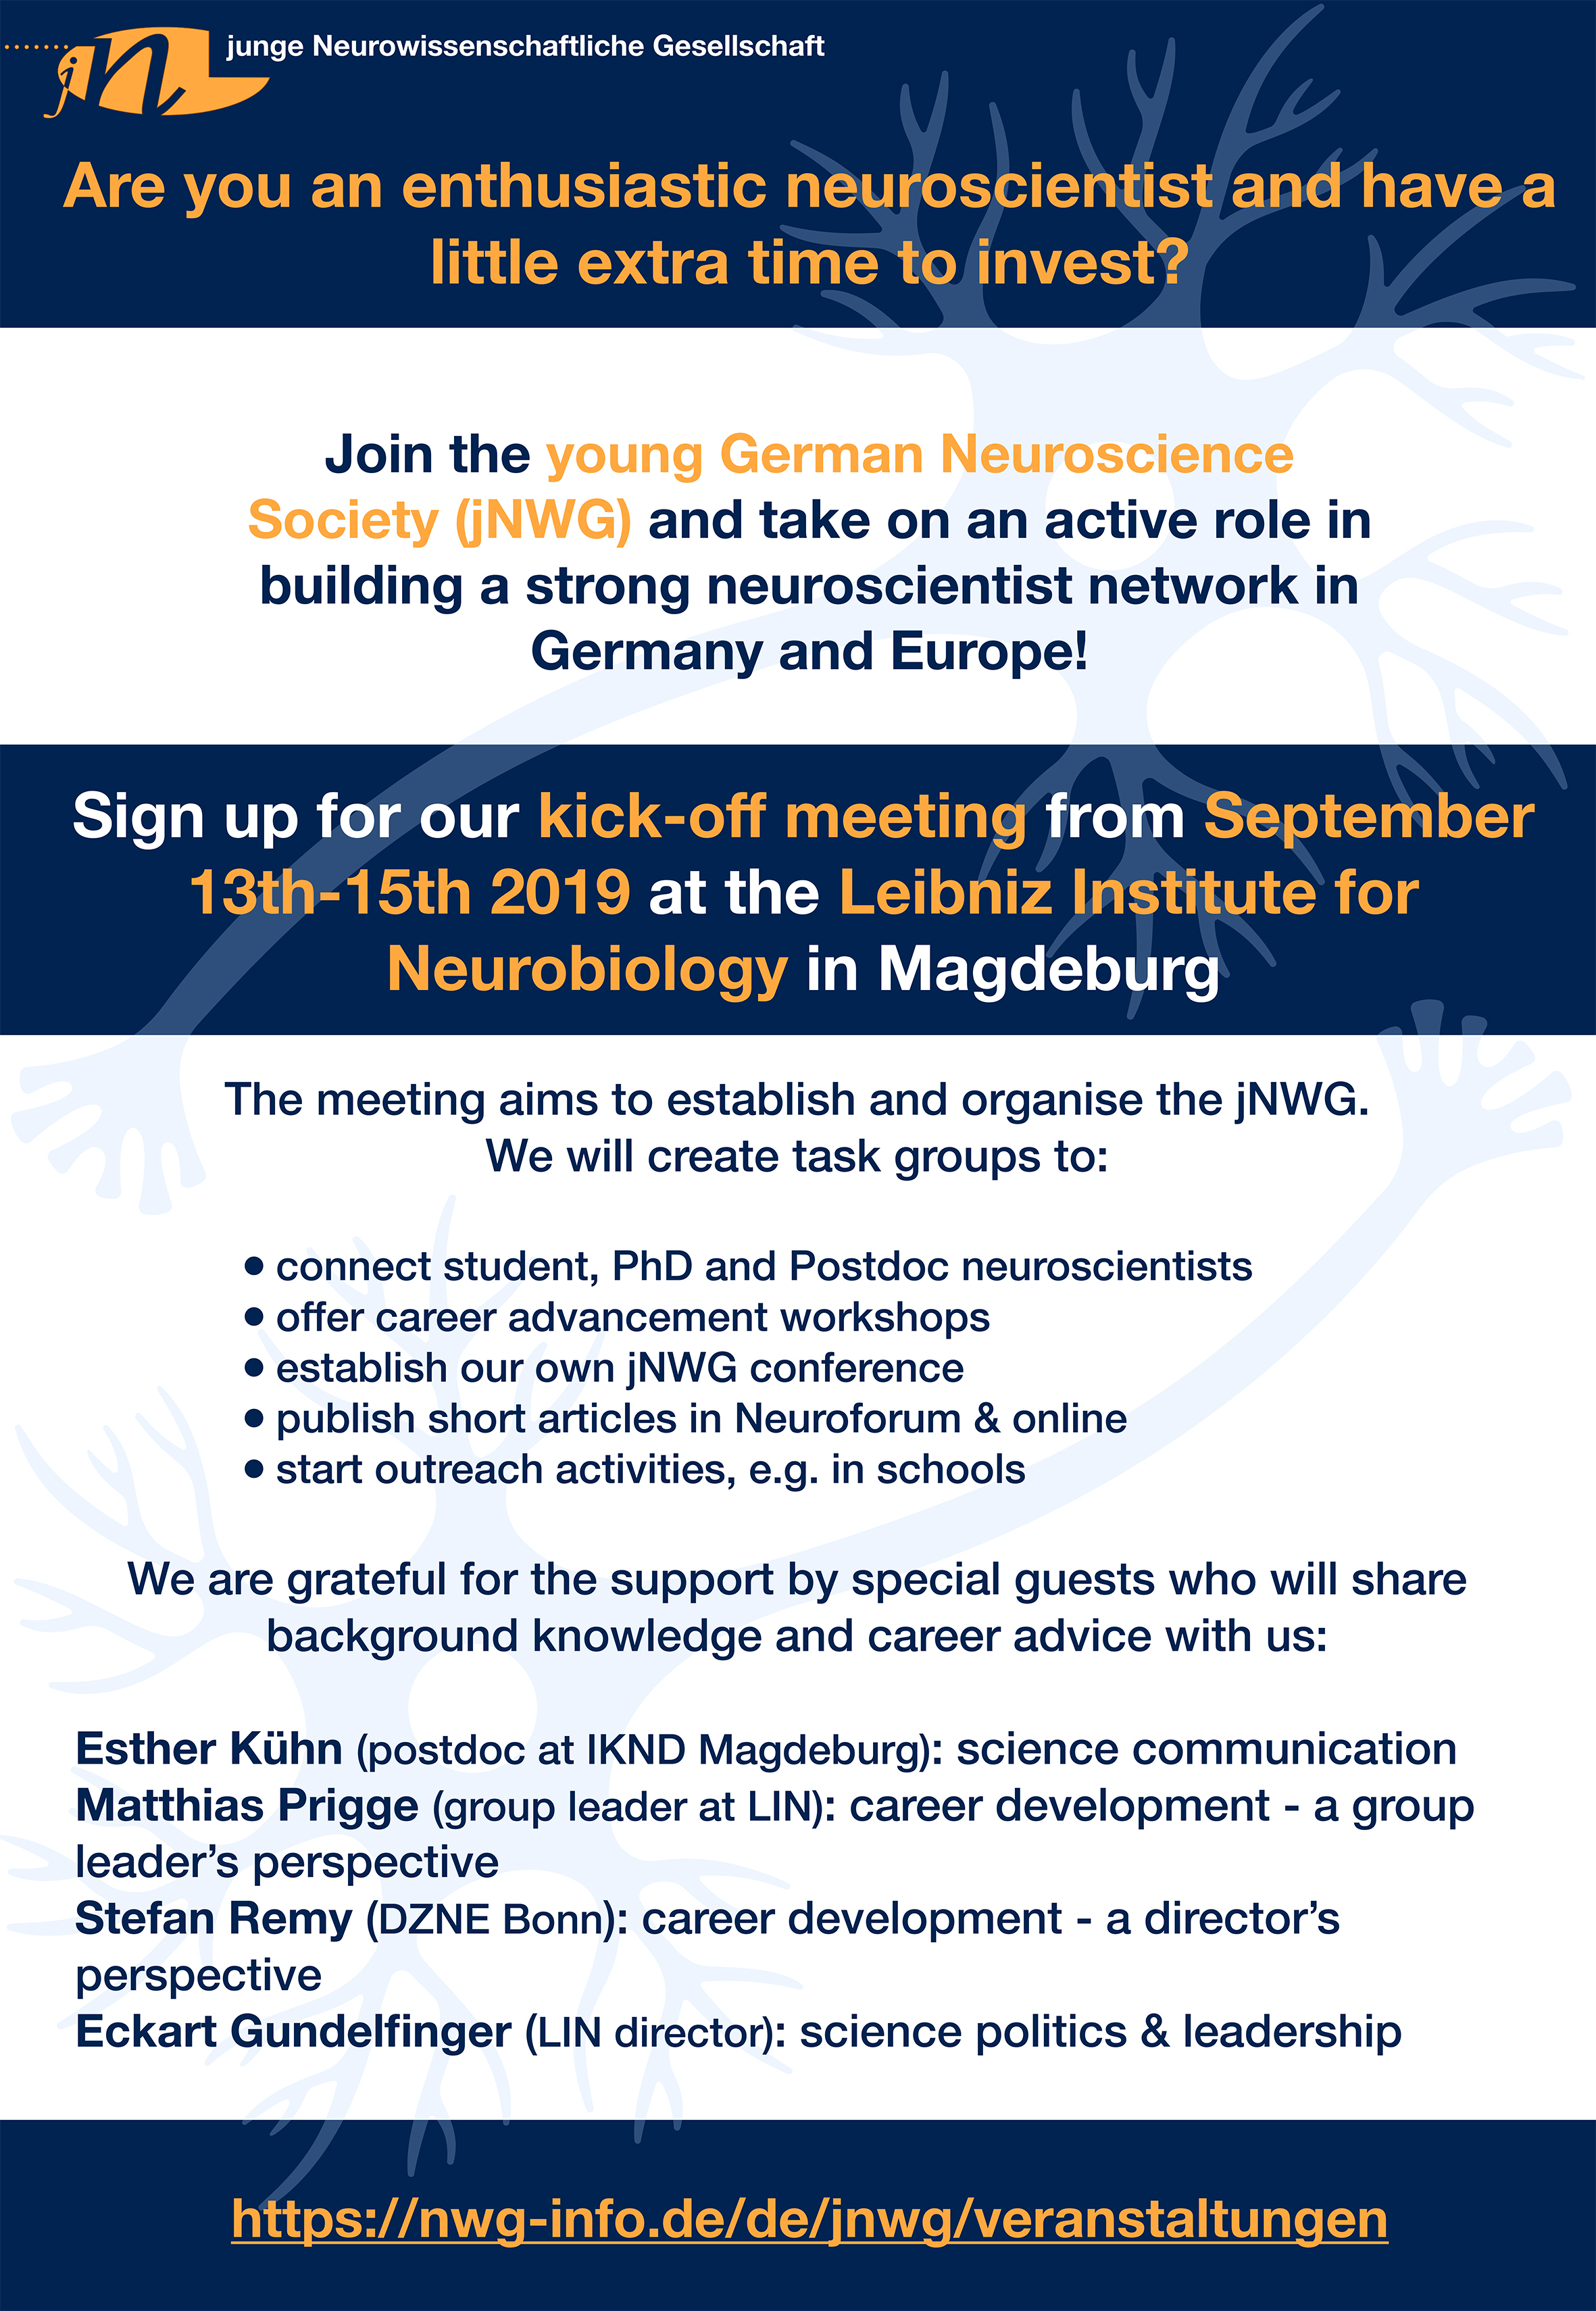 Kick-off: young German Neuroscience Society (jNWG) @ Leibniz Institute for Neurobiology Magdeburg